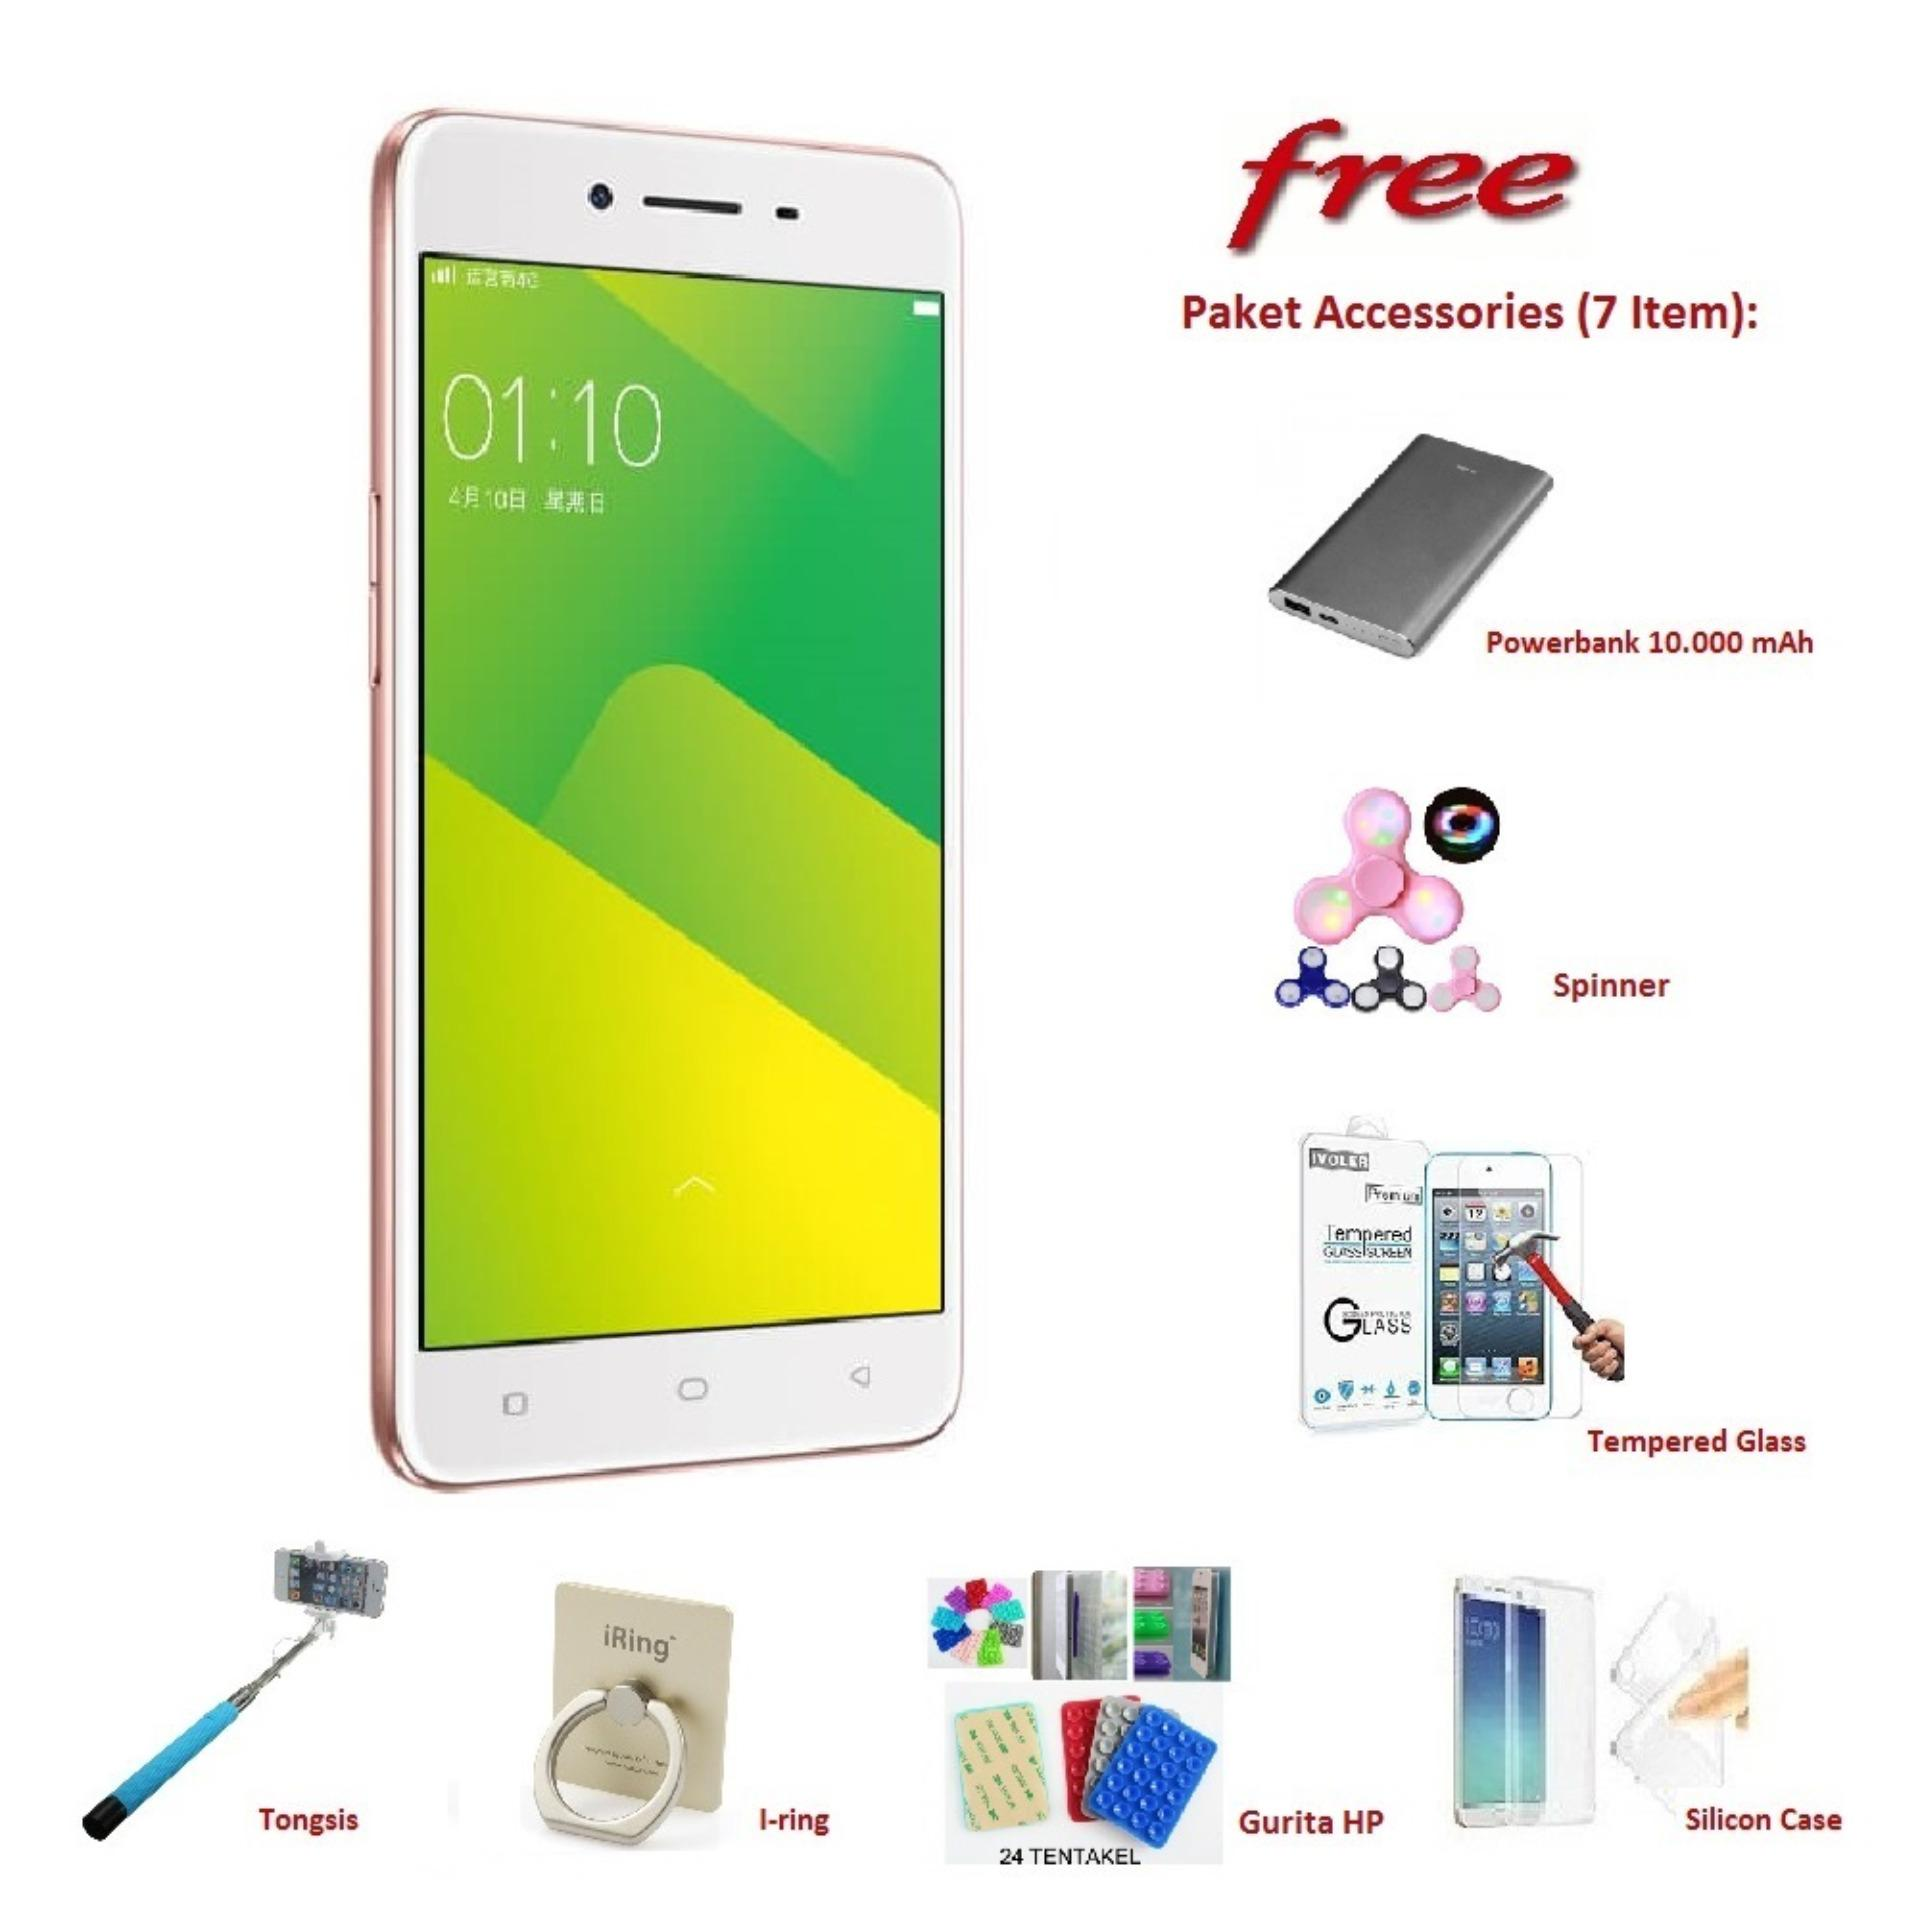 OPPO A37 [2 16GB] Free 7 Item Accessories